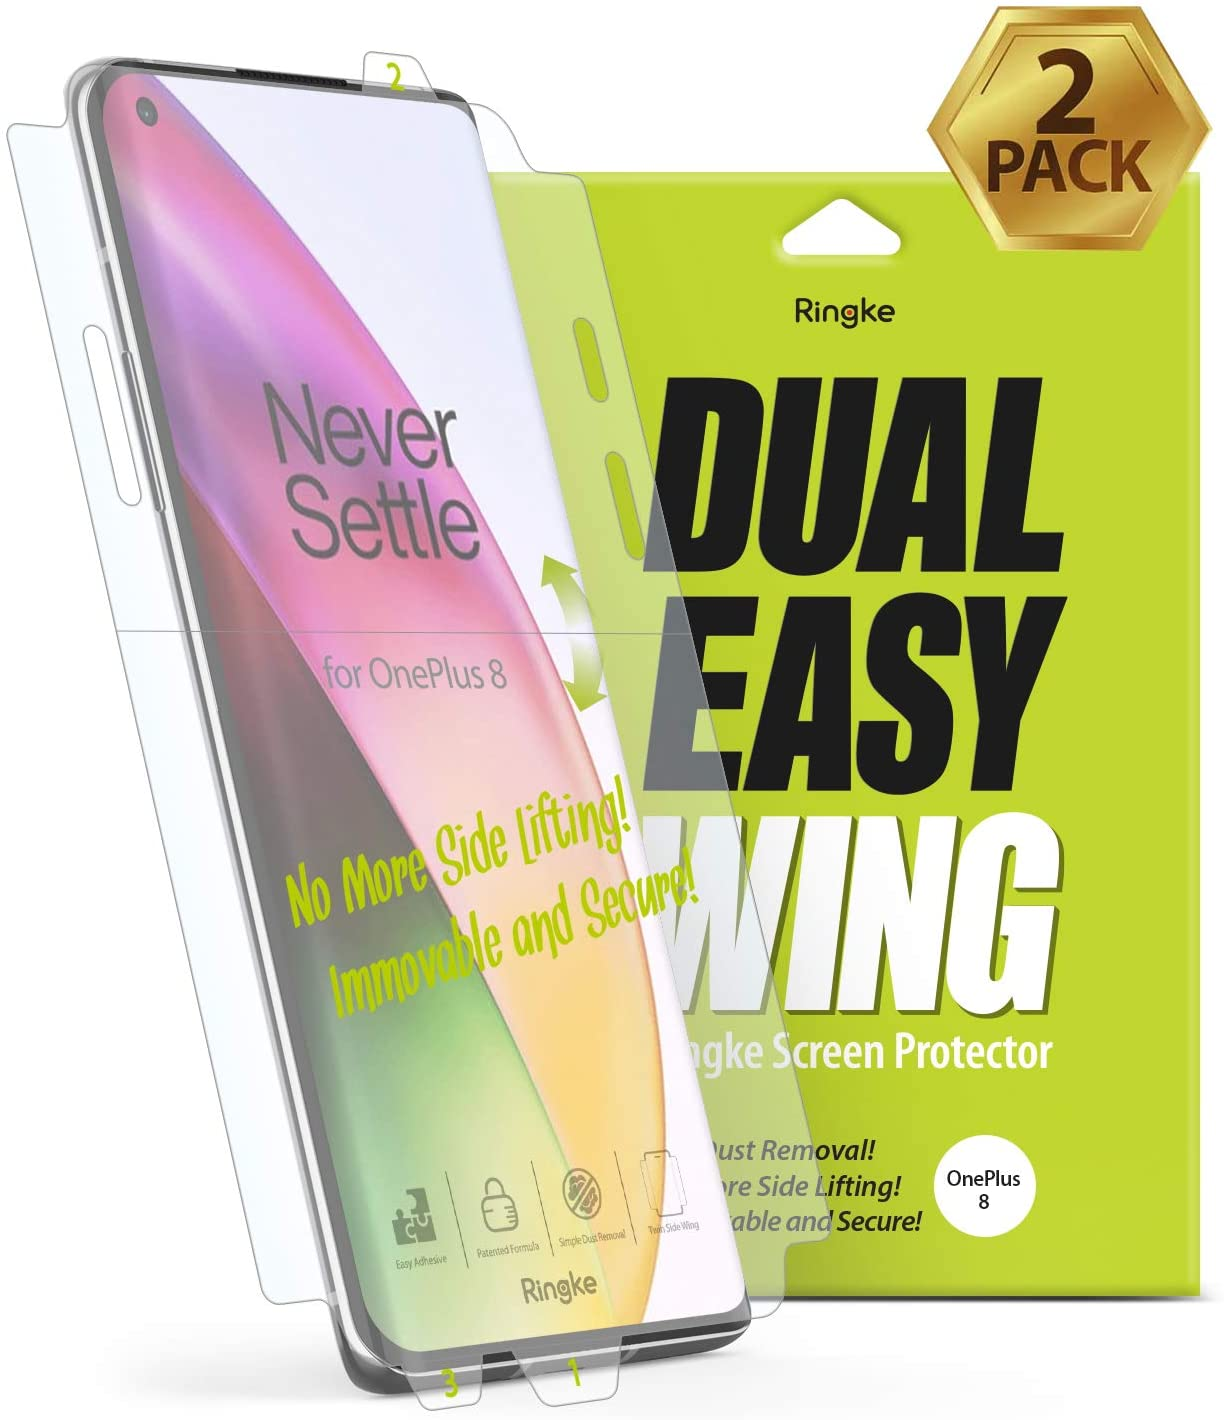 ringke dual easy wing film for oneplus 8 screen protector